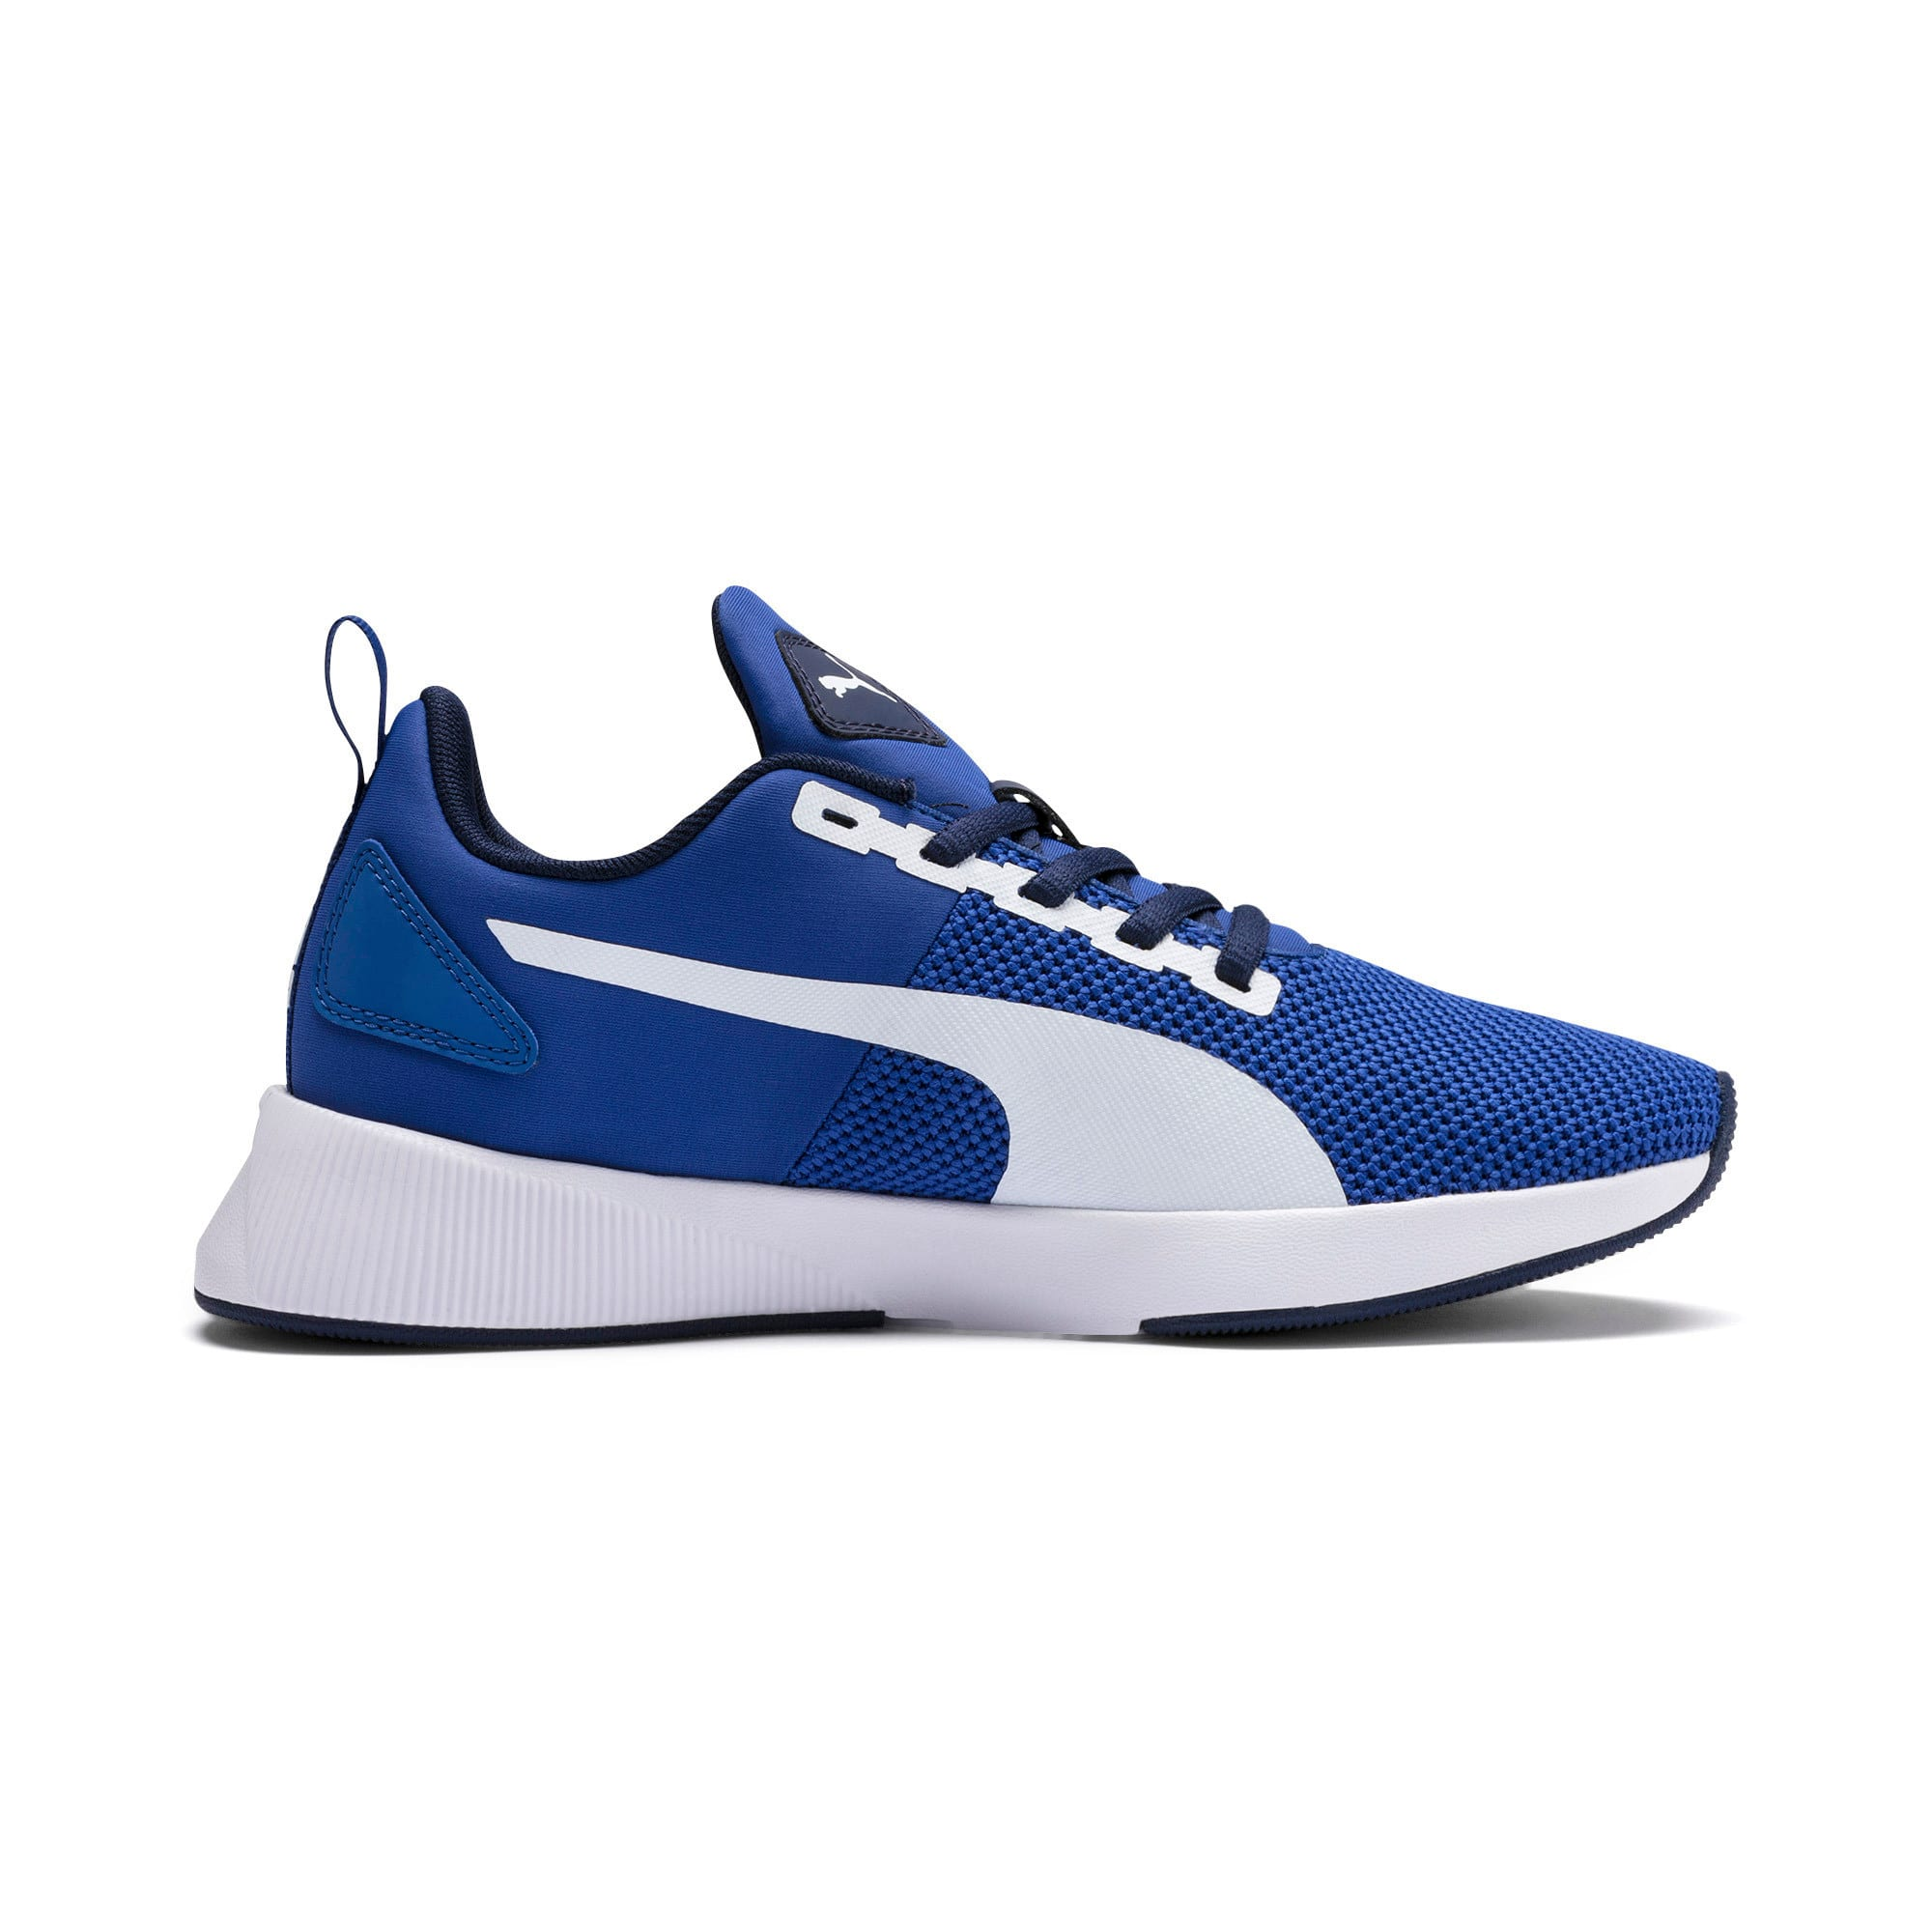 Thumbnail 5 of Flyer Runner Youth Trainers, Galaxy Blue-White-Peacoat, medium-IND